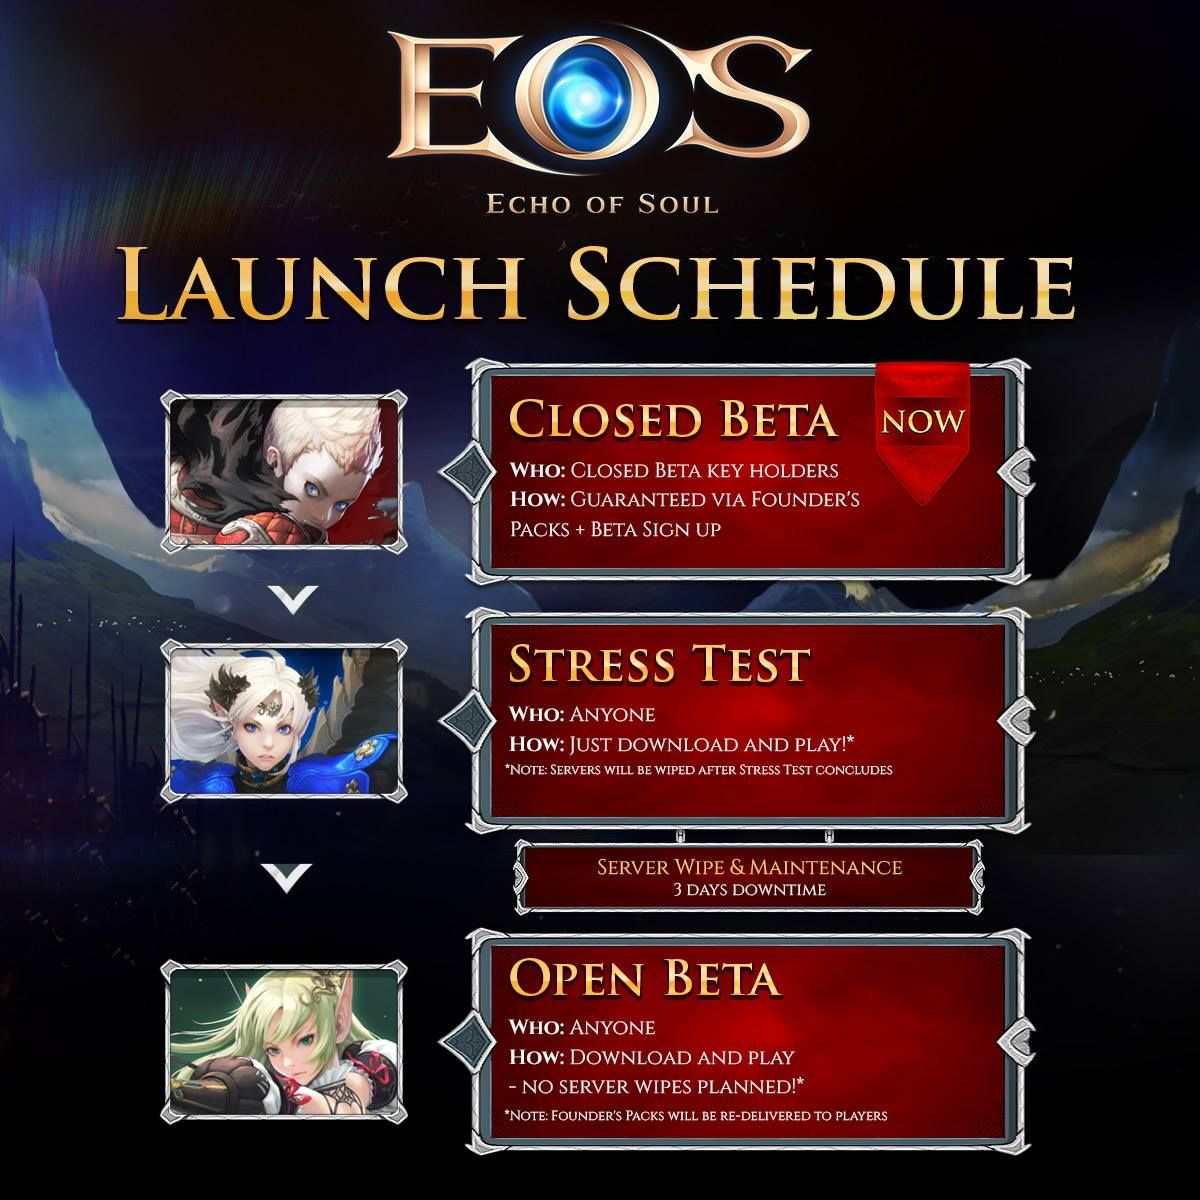 echo of soul release plan